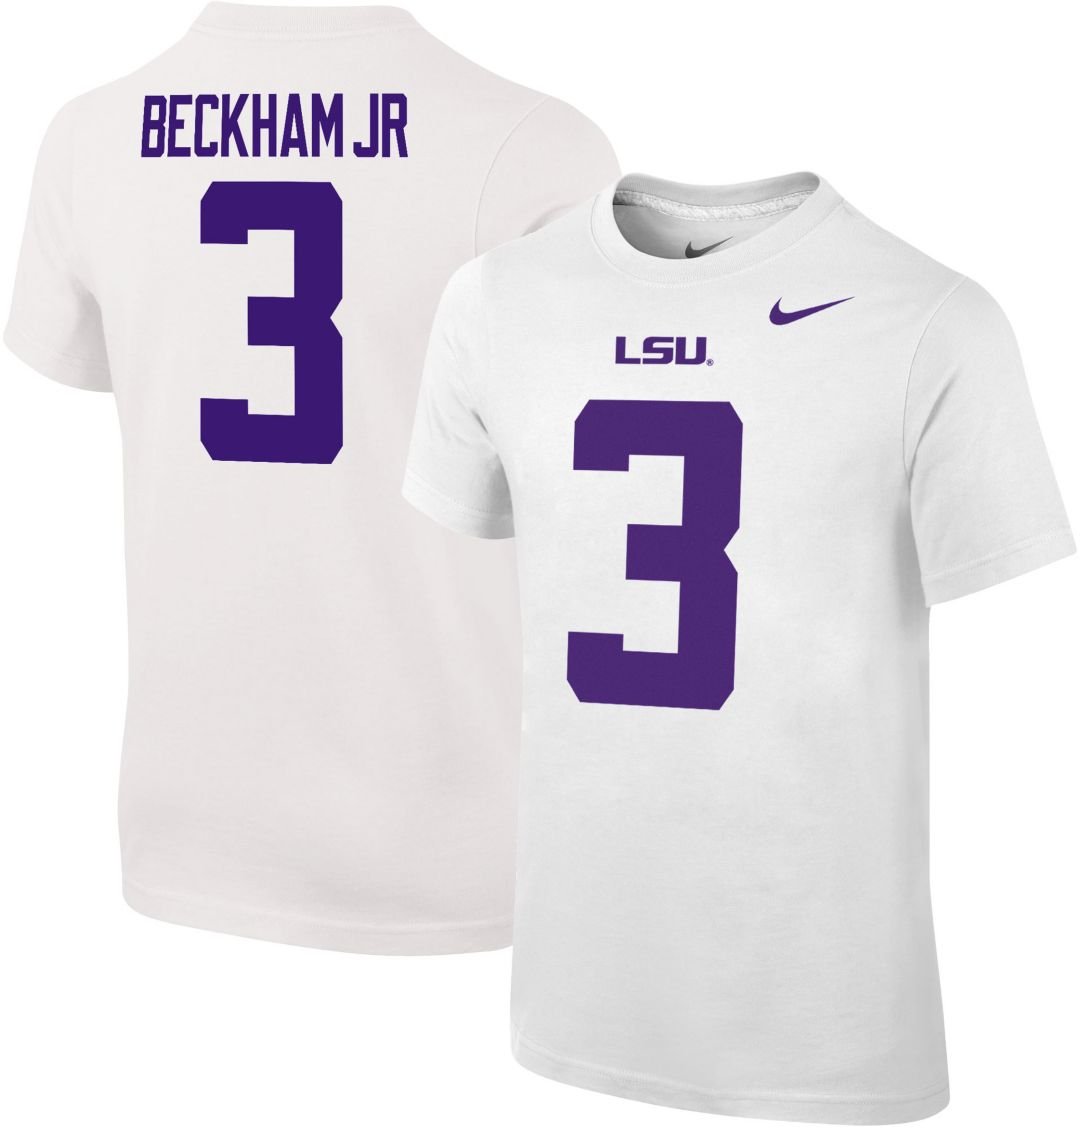 brand new afb9b 9f7fa Nike Youth Odell Beckham Jr. LSU Tigers #3 Cotton Football Jersey White  T-Shirt